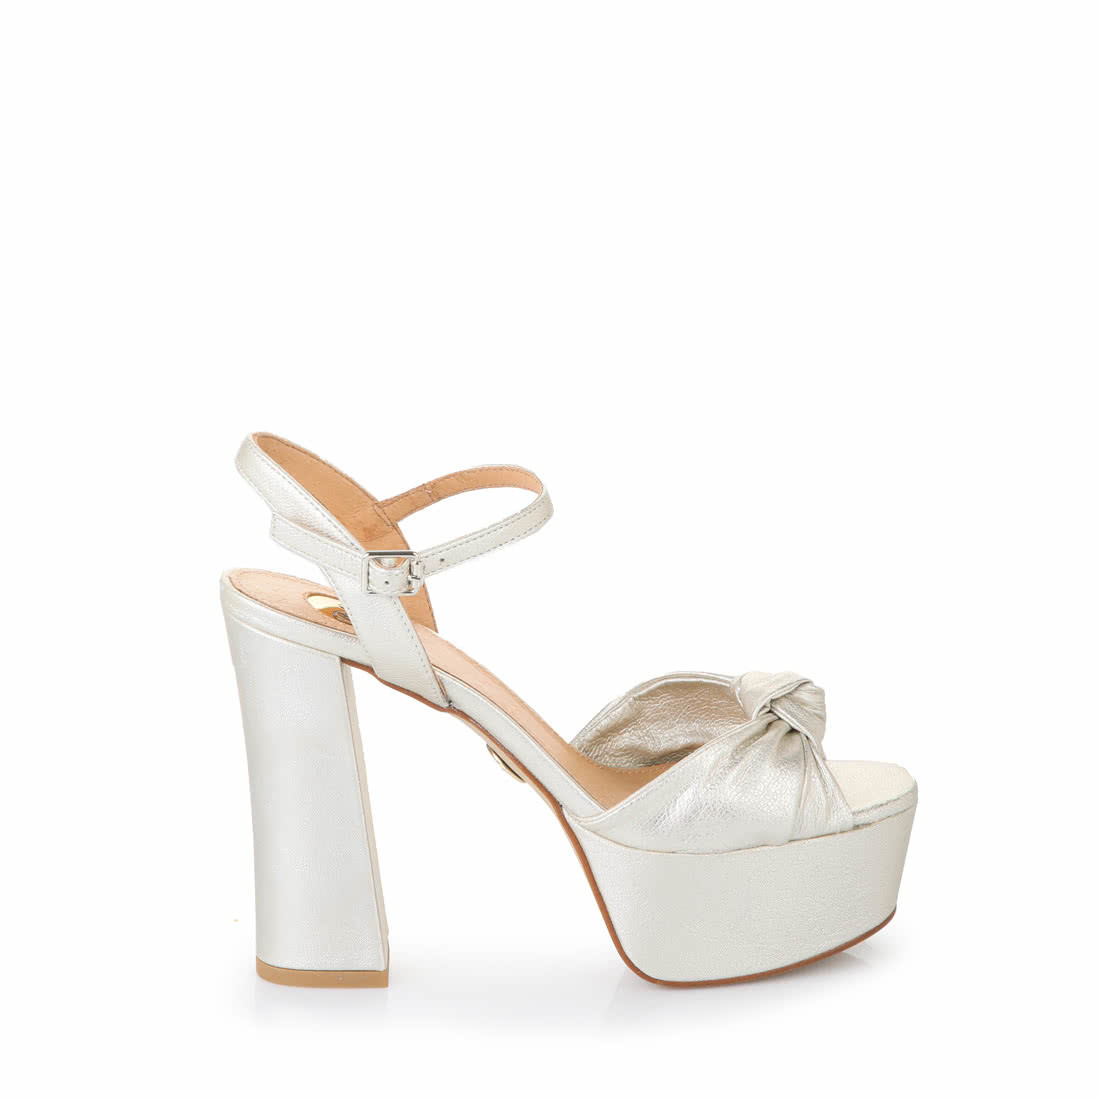 Buffalo silver metallic platform sandals with knots buy